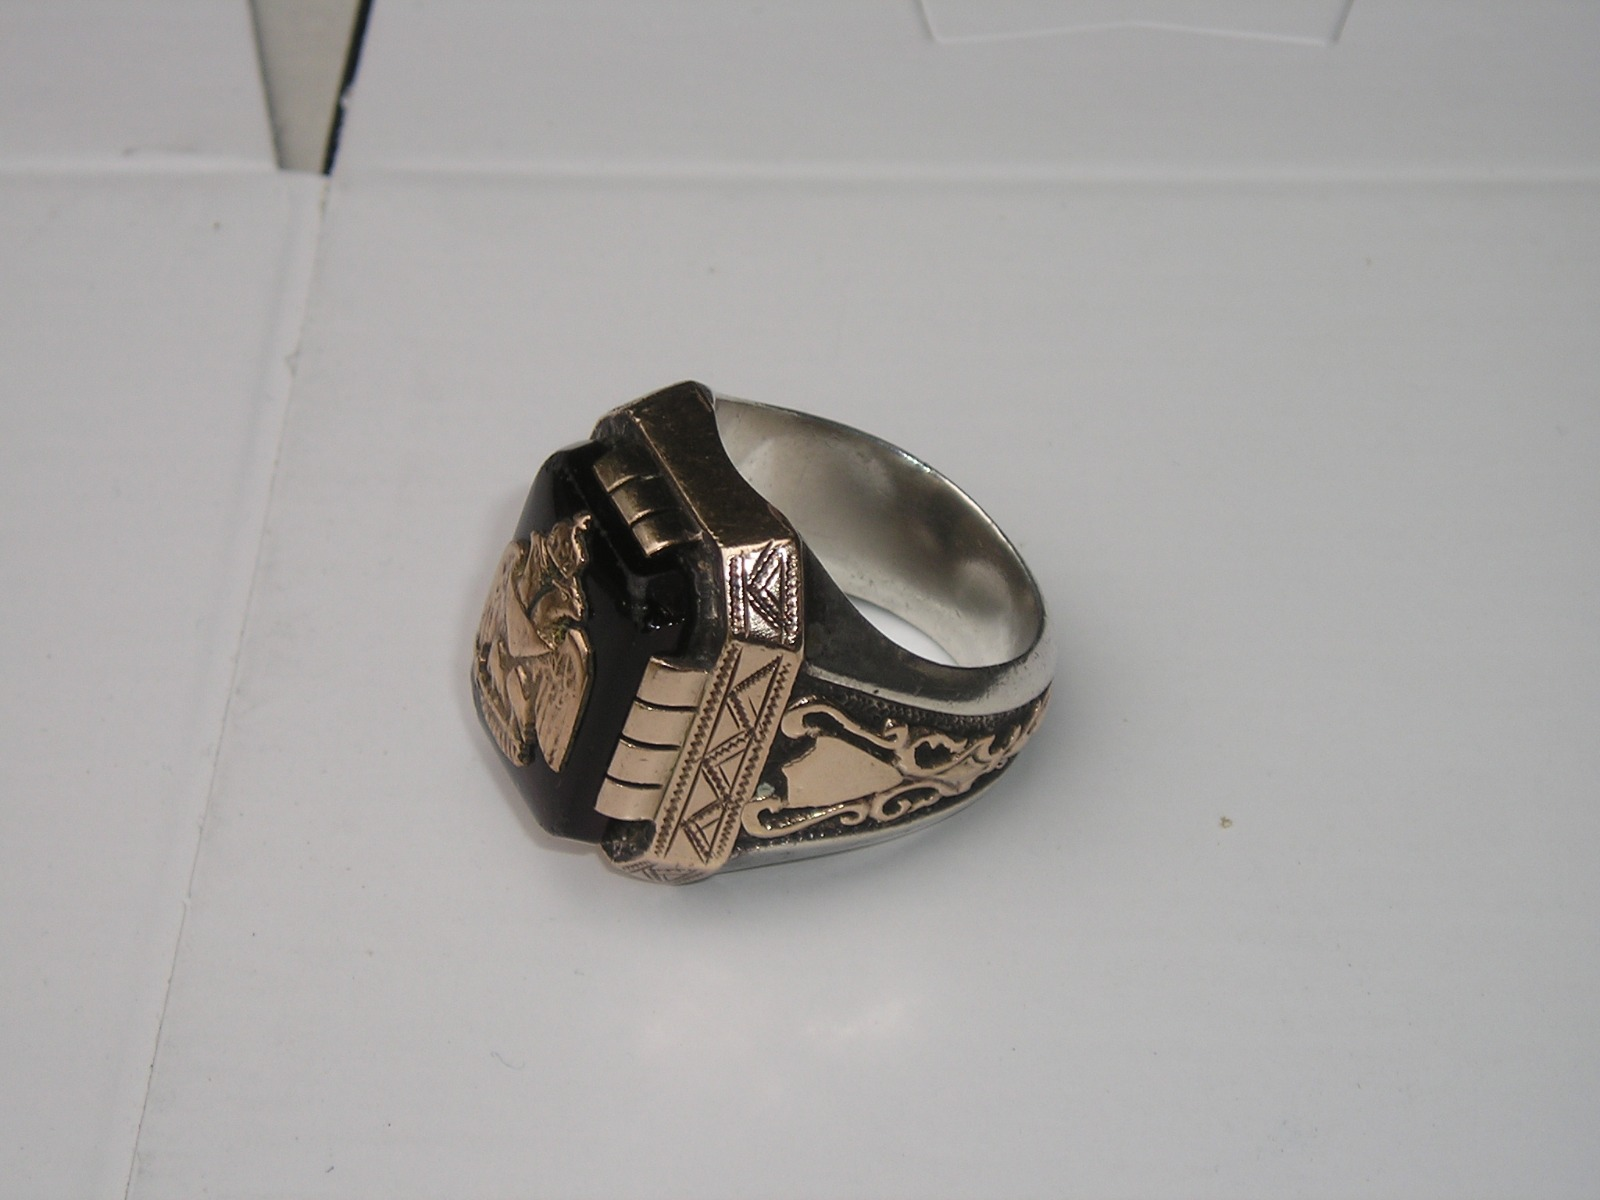 Can someone help identify this symbol masonic sco the ebay the ring appears to be sterling and 10k gold but is not marked i am assuming its oldything would be greatly appreciated biocorpaavc